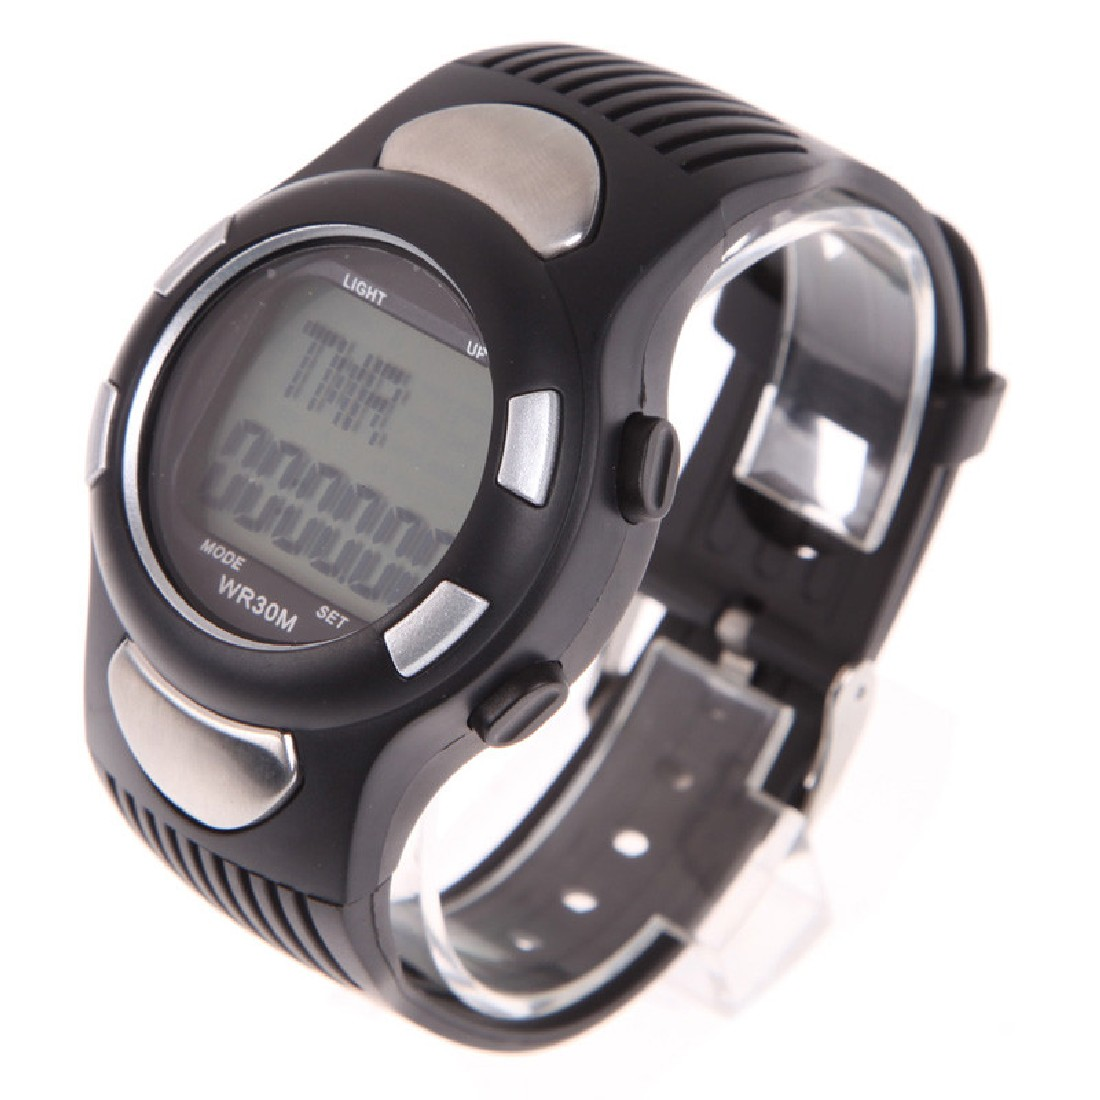 Running 3D Pedometer Heart Rate Monitor Wristwatch Fitness Watch Stappenteller With Backlight Silver